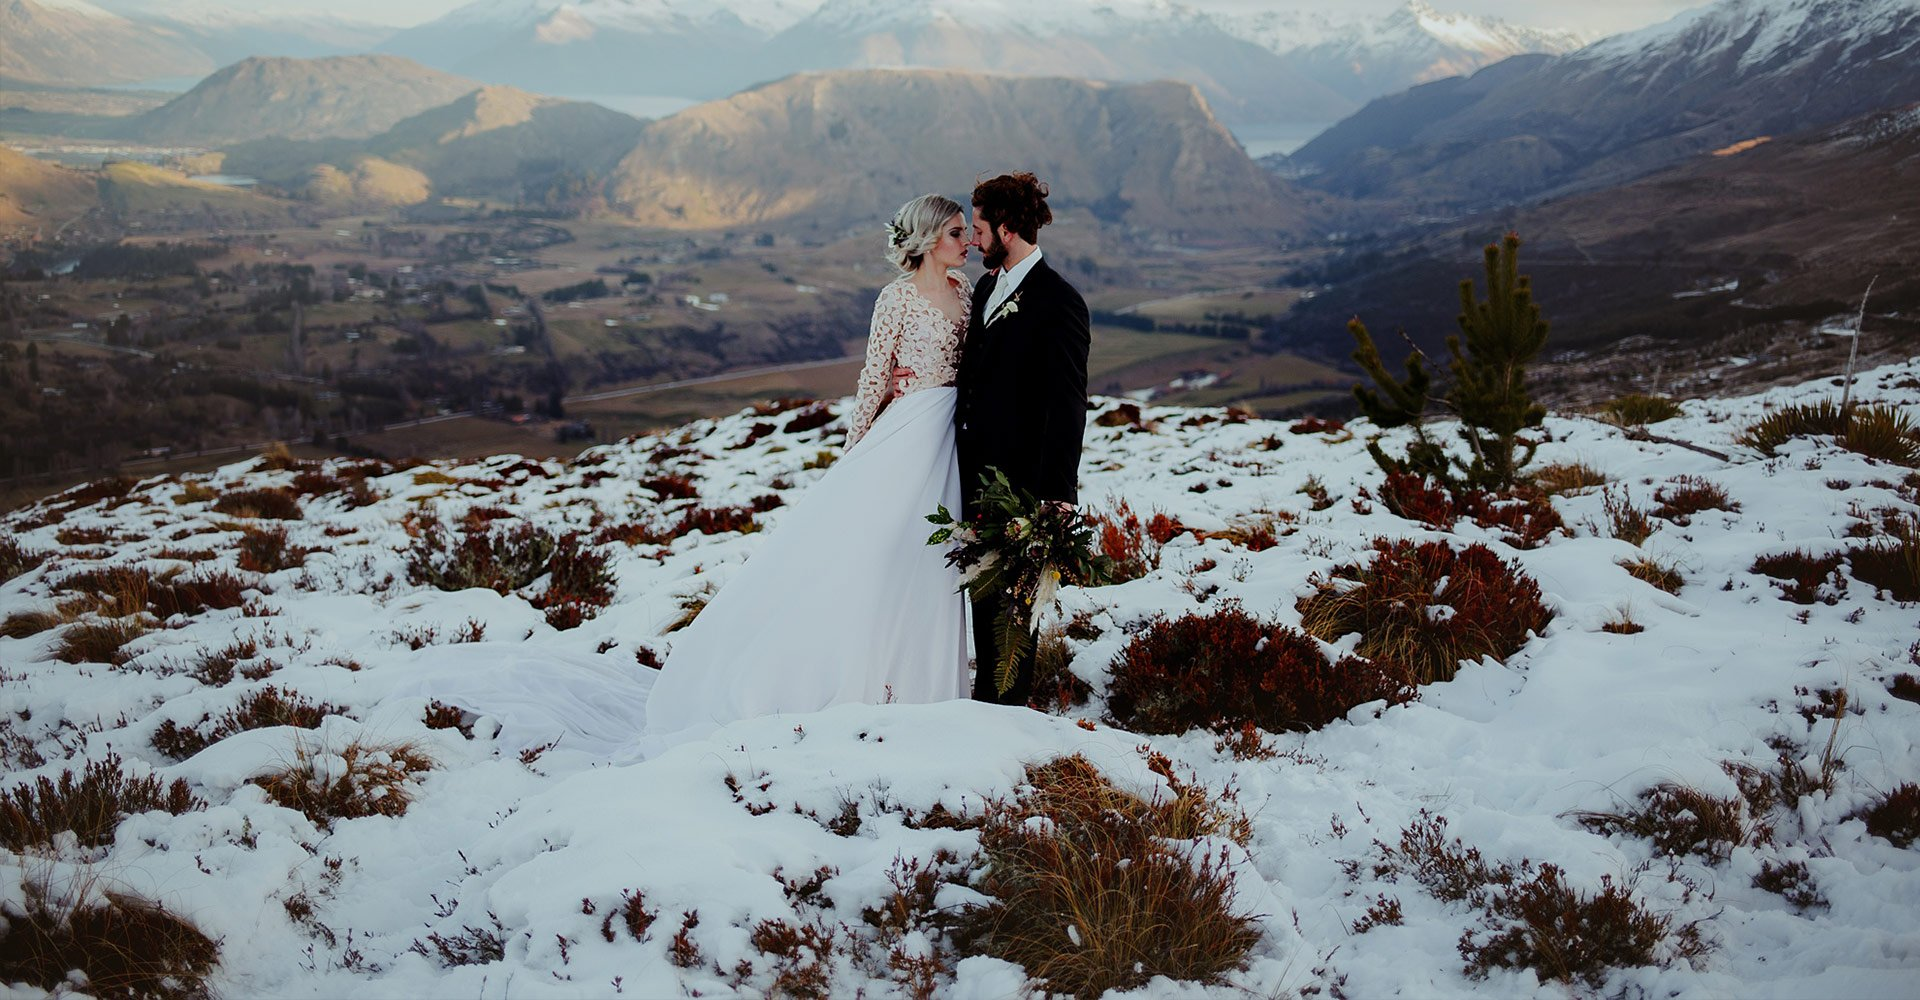 Suzy Lee Make Up Artist - Bridal Makeup - Queenstown - Suzy Lee Artistry